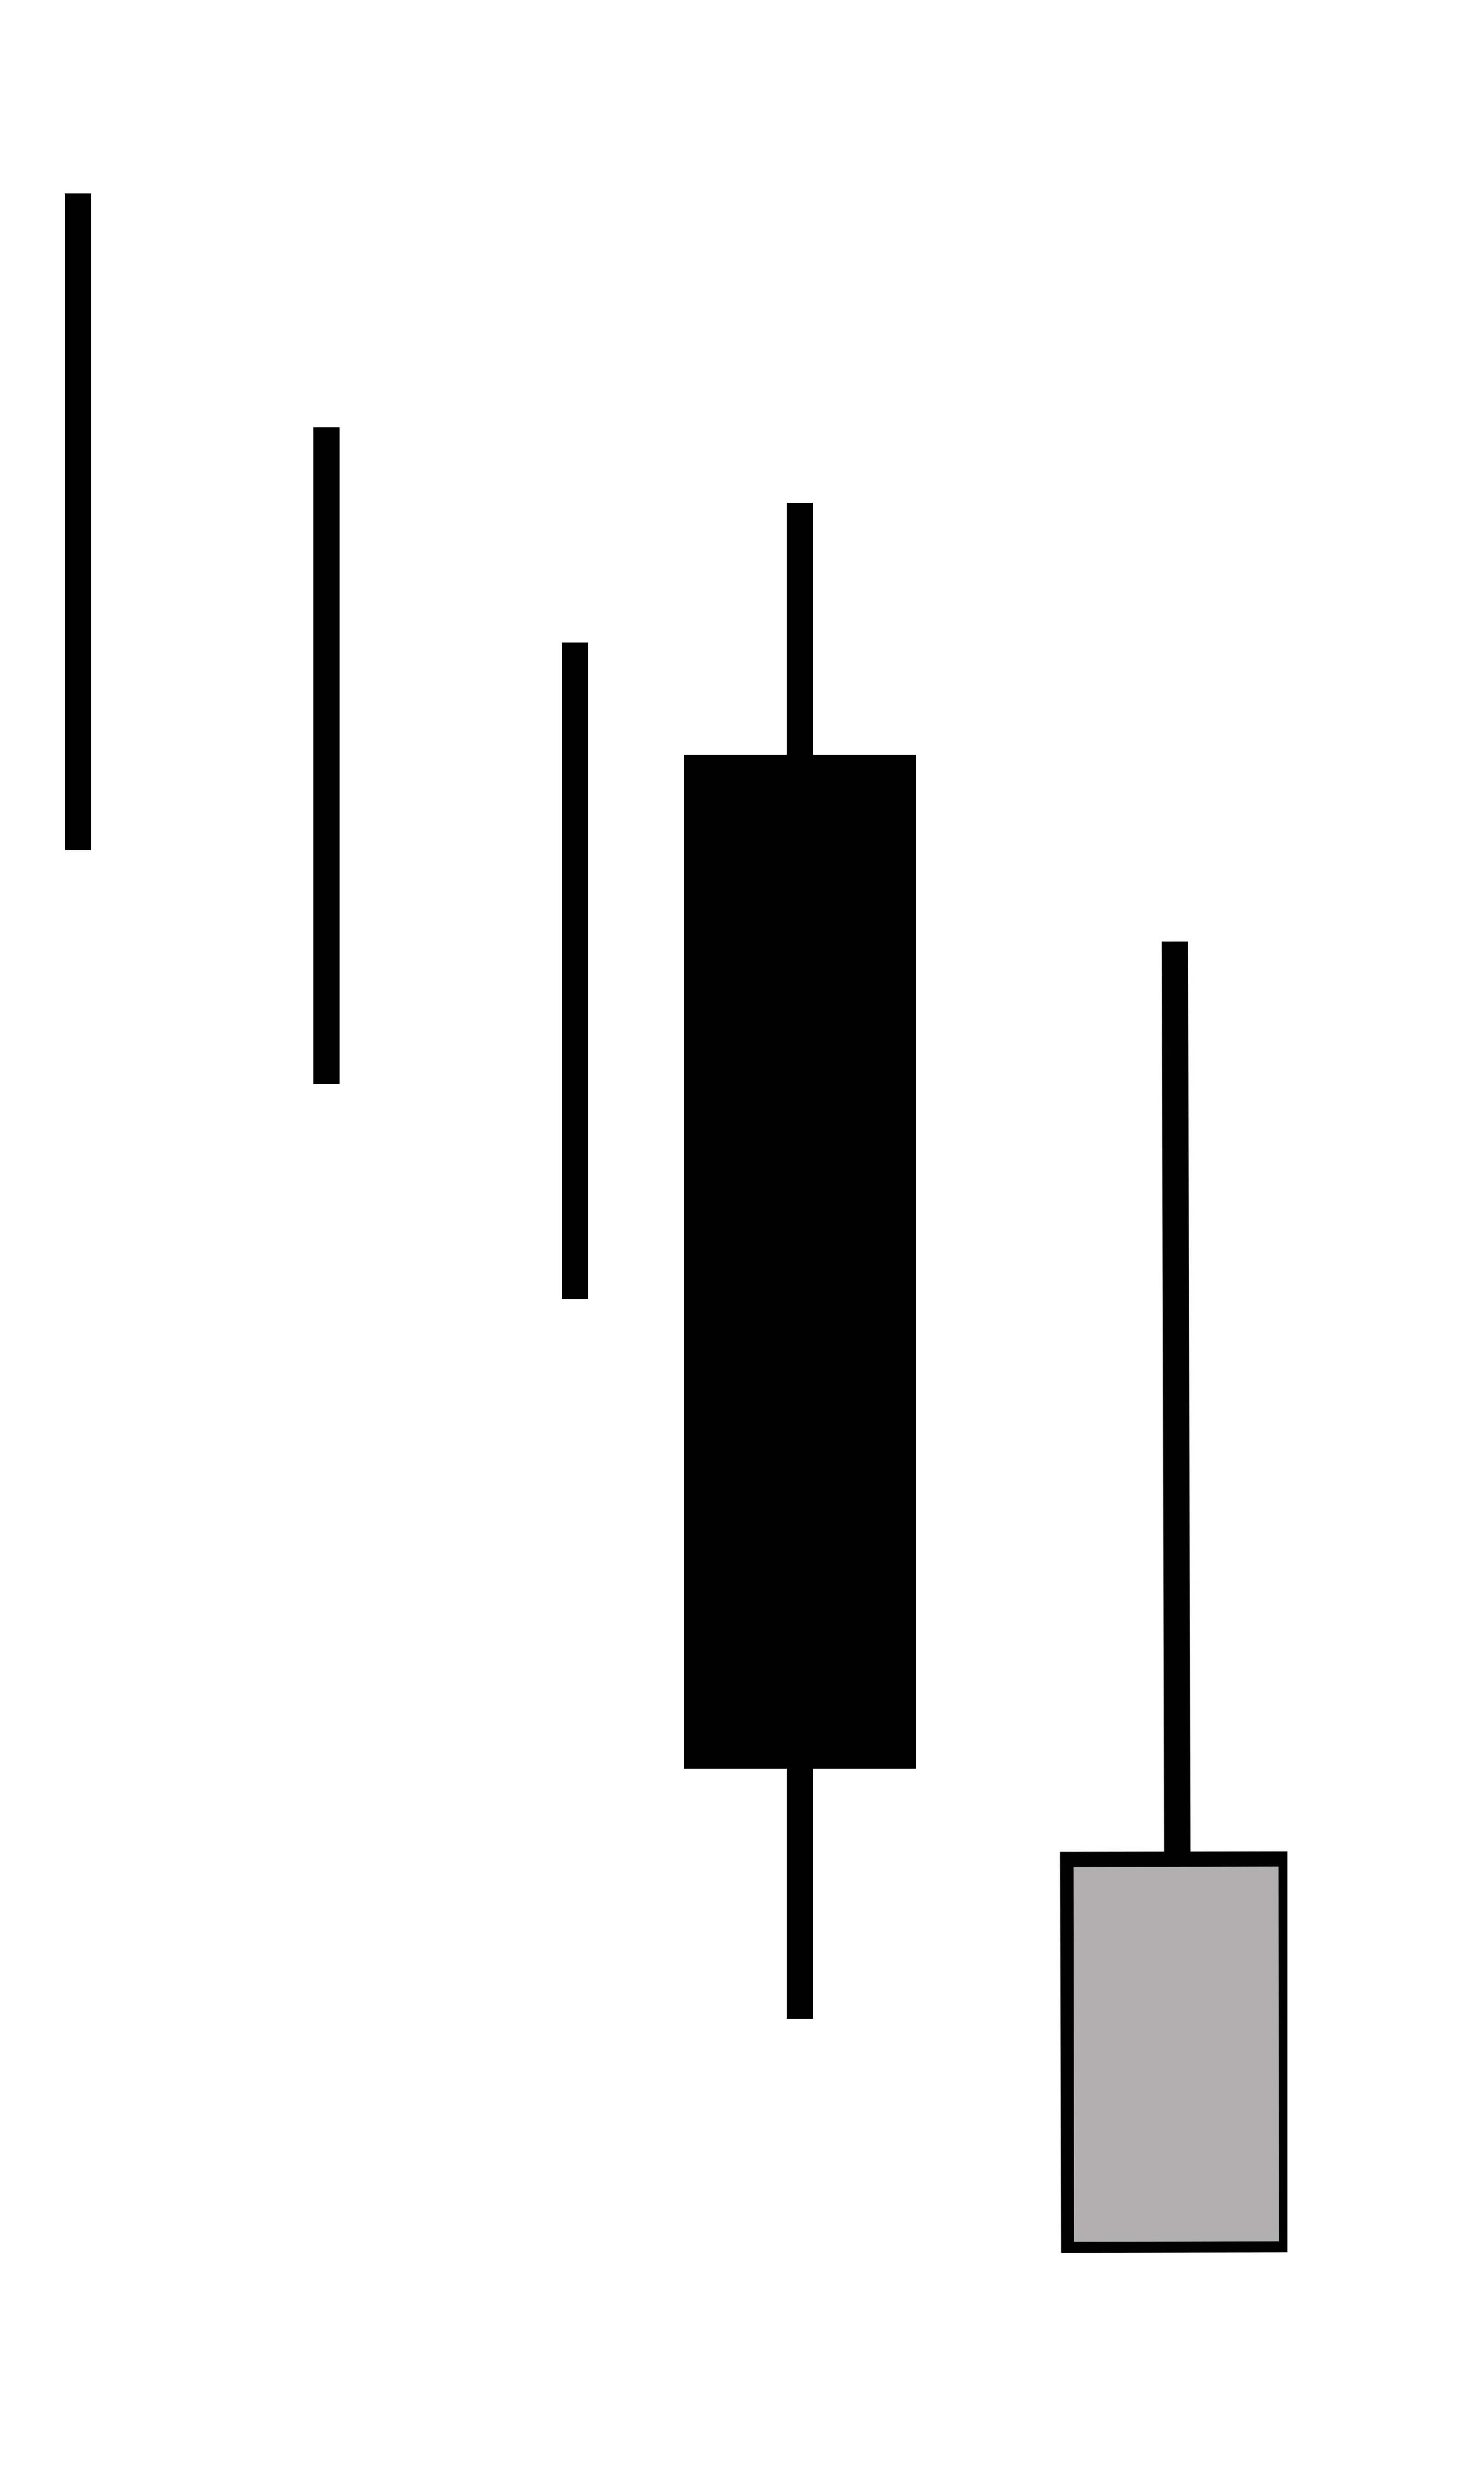 Inverted Hammer Candlestick Pattern